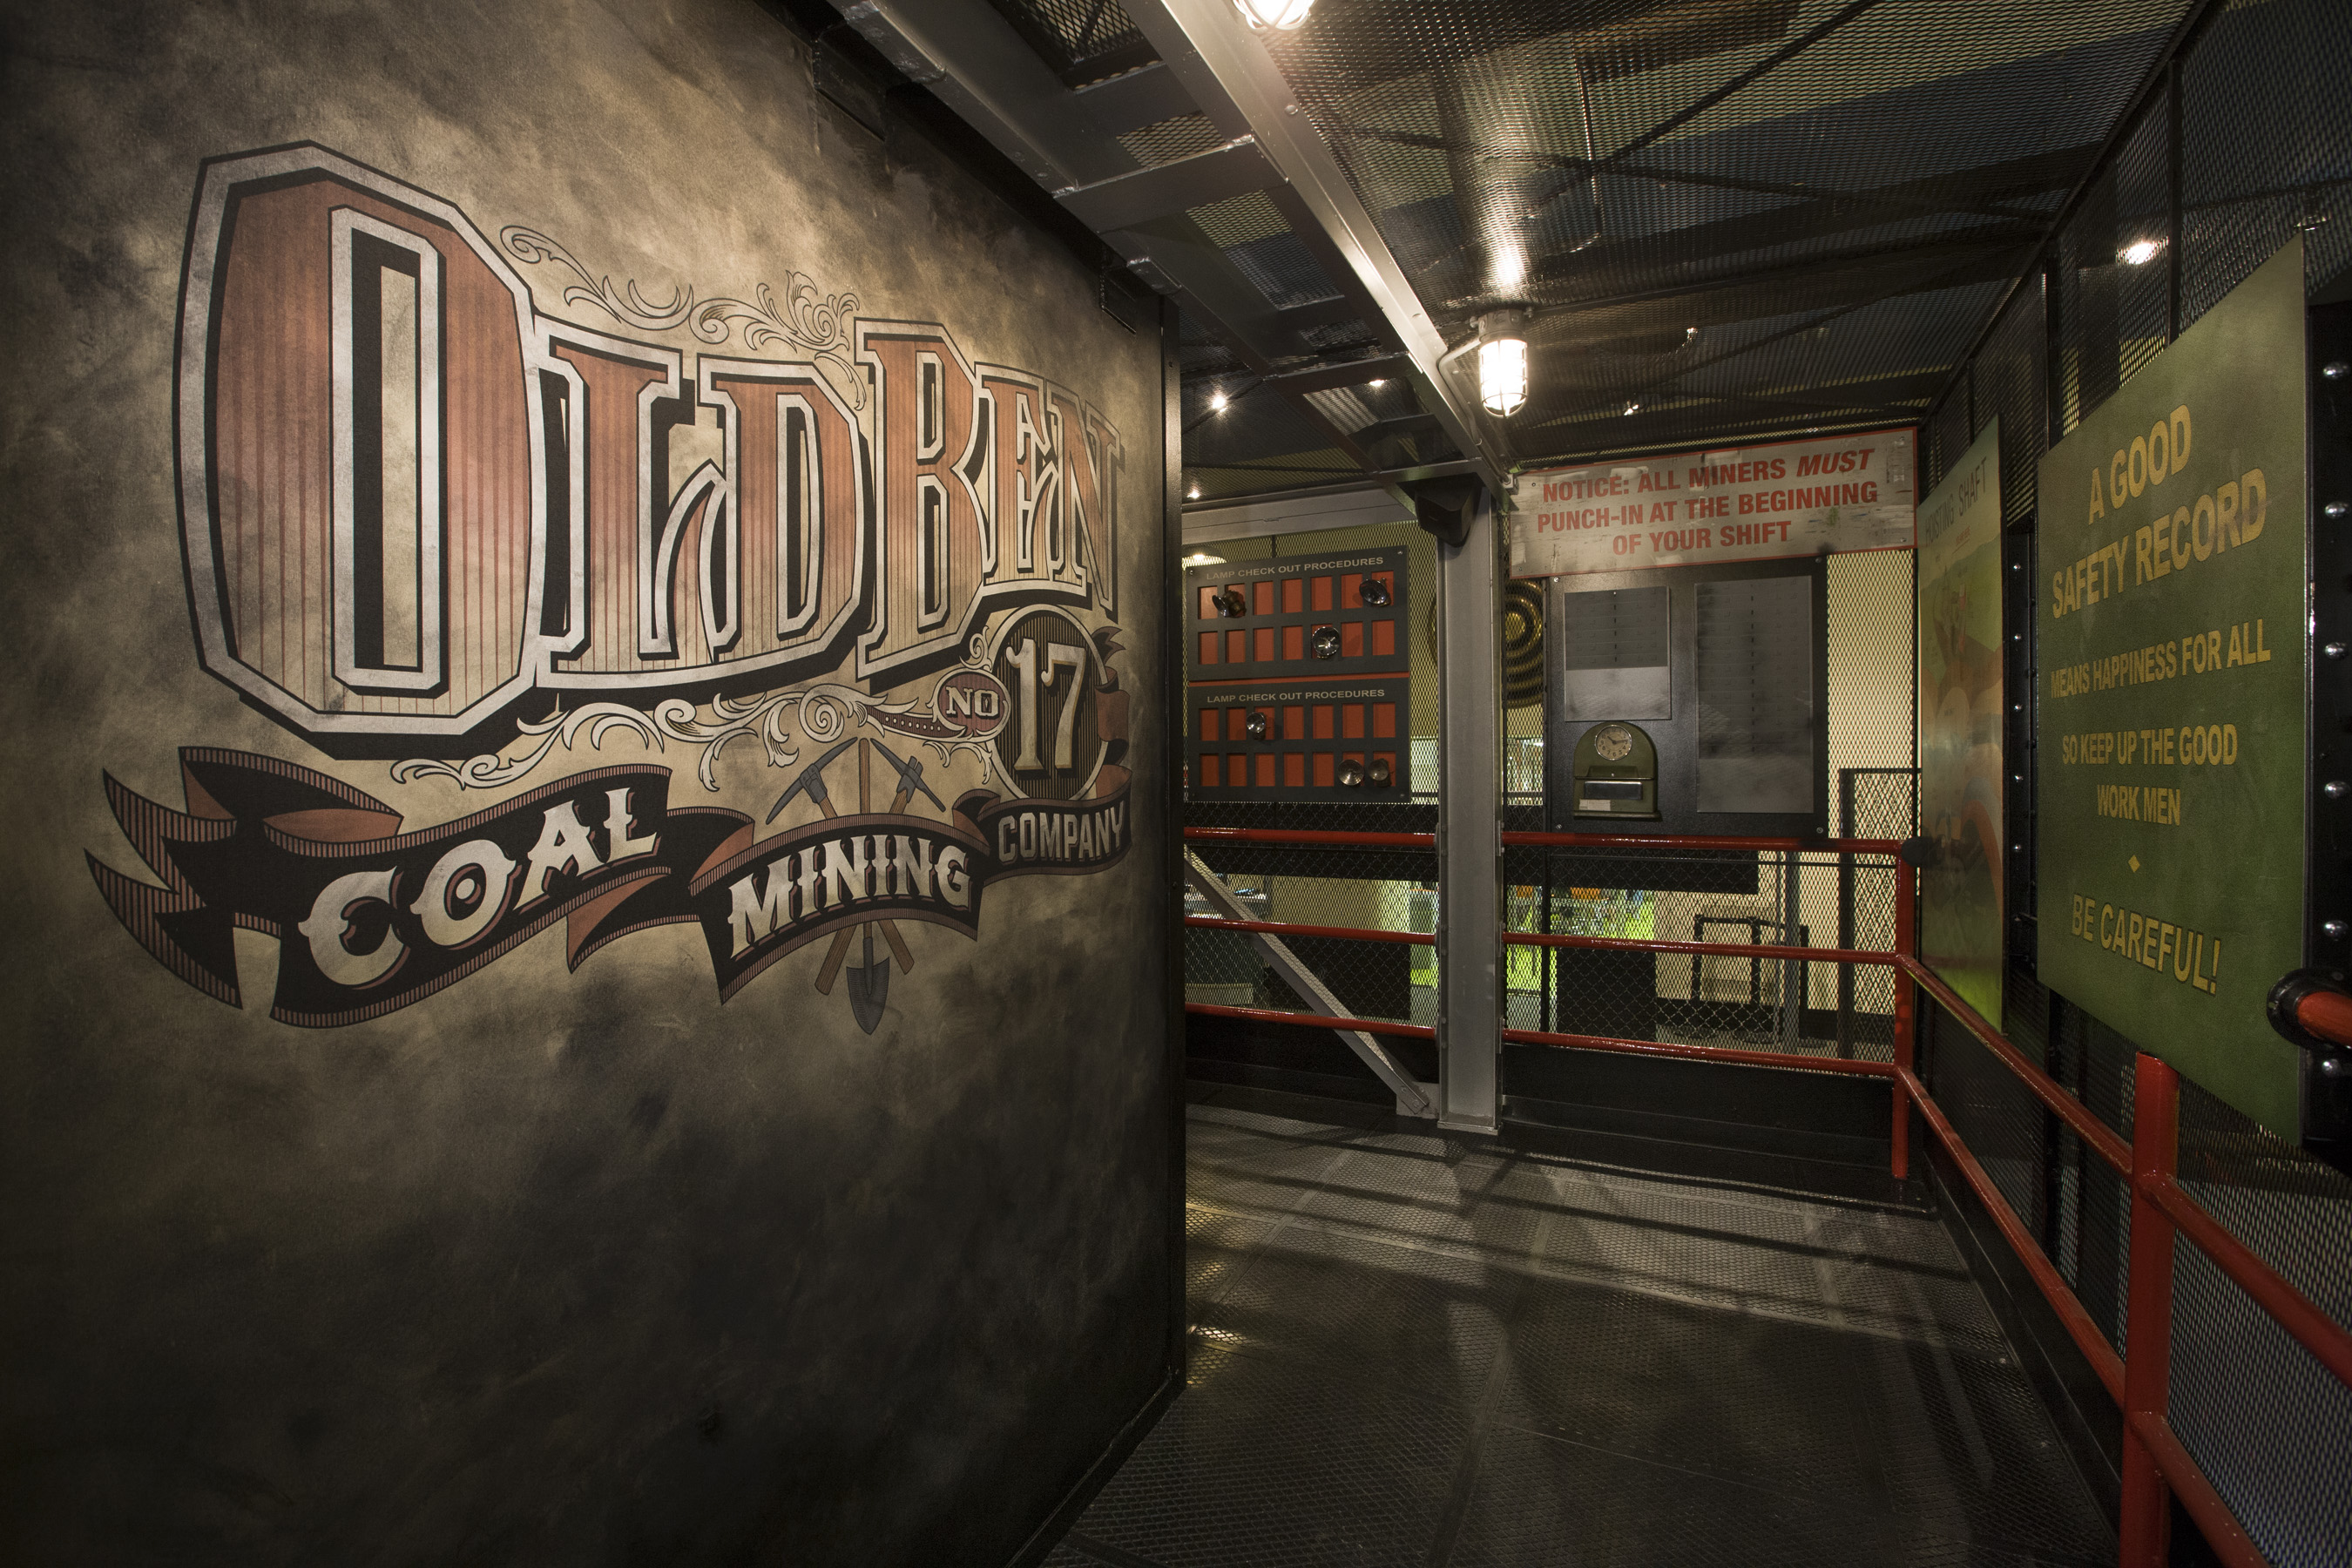 Entrance to Coal Mine exhibit